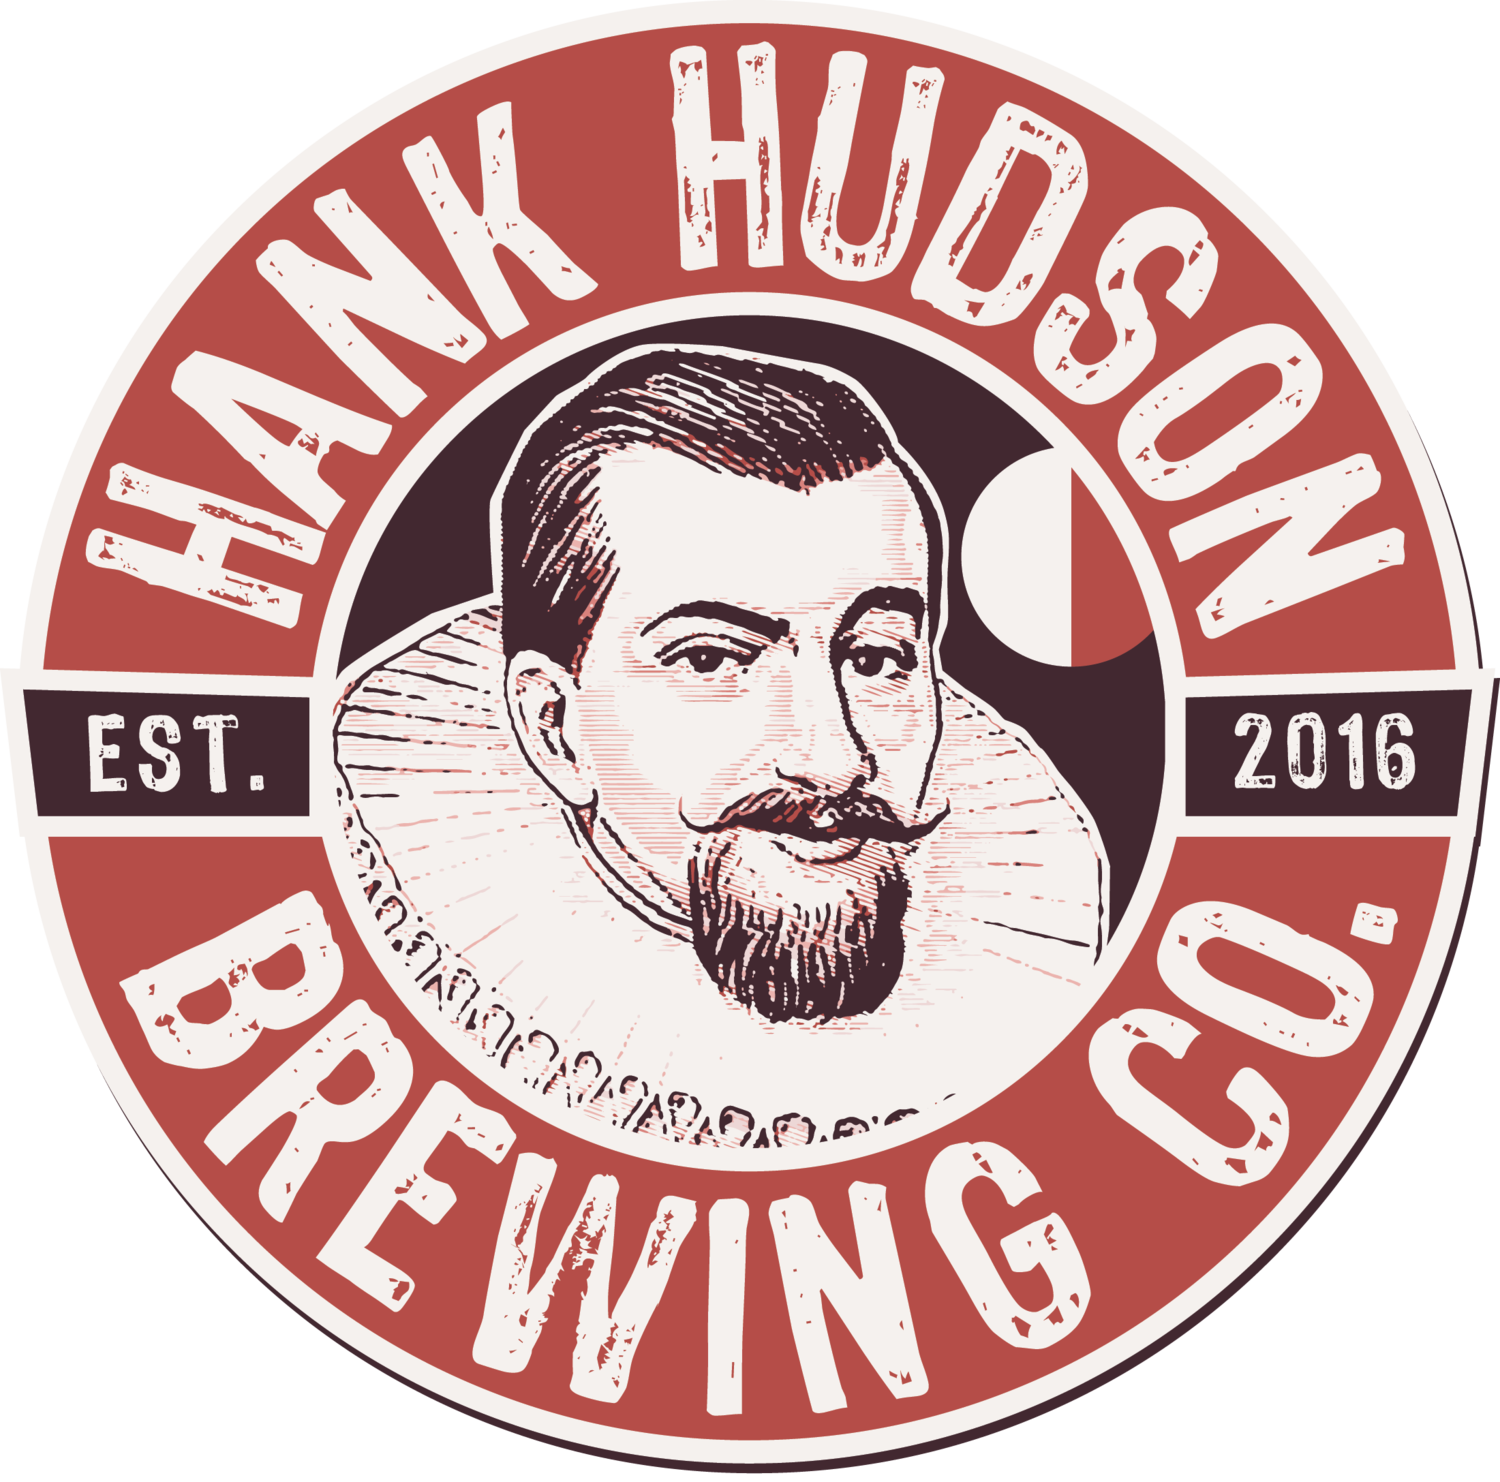 Hank Hudson Brewing Co.